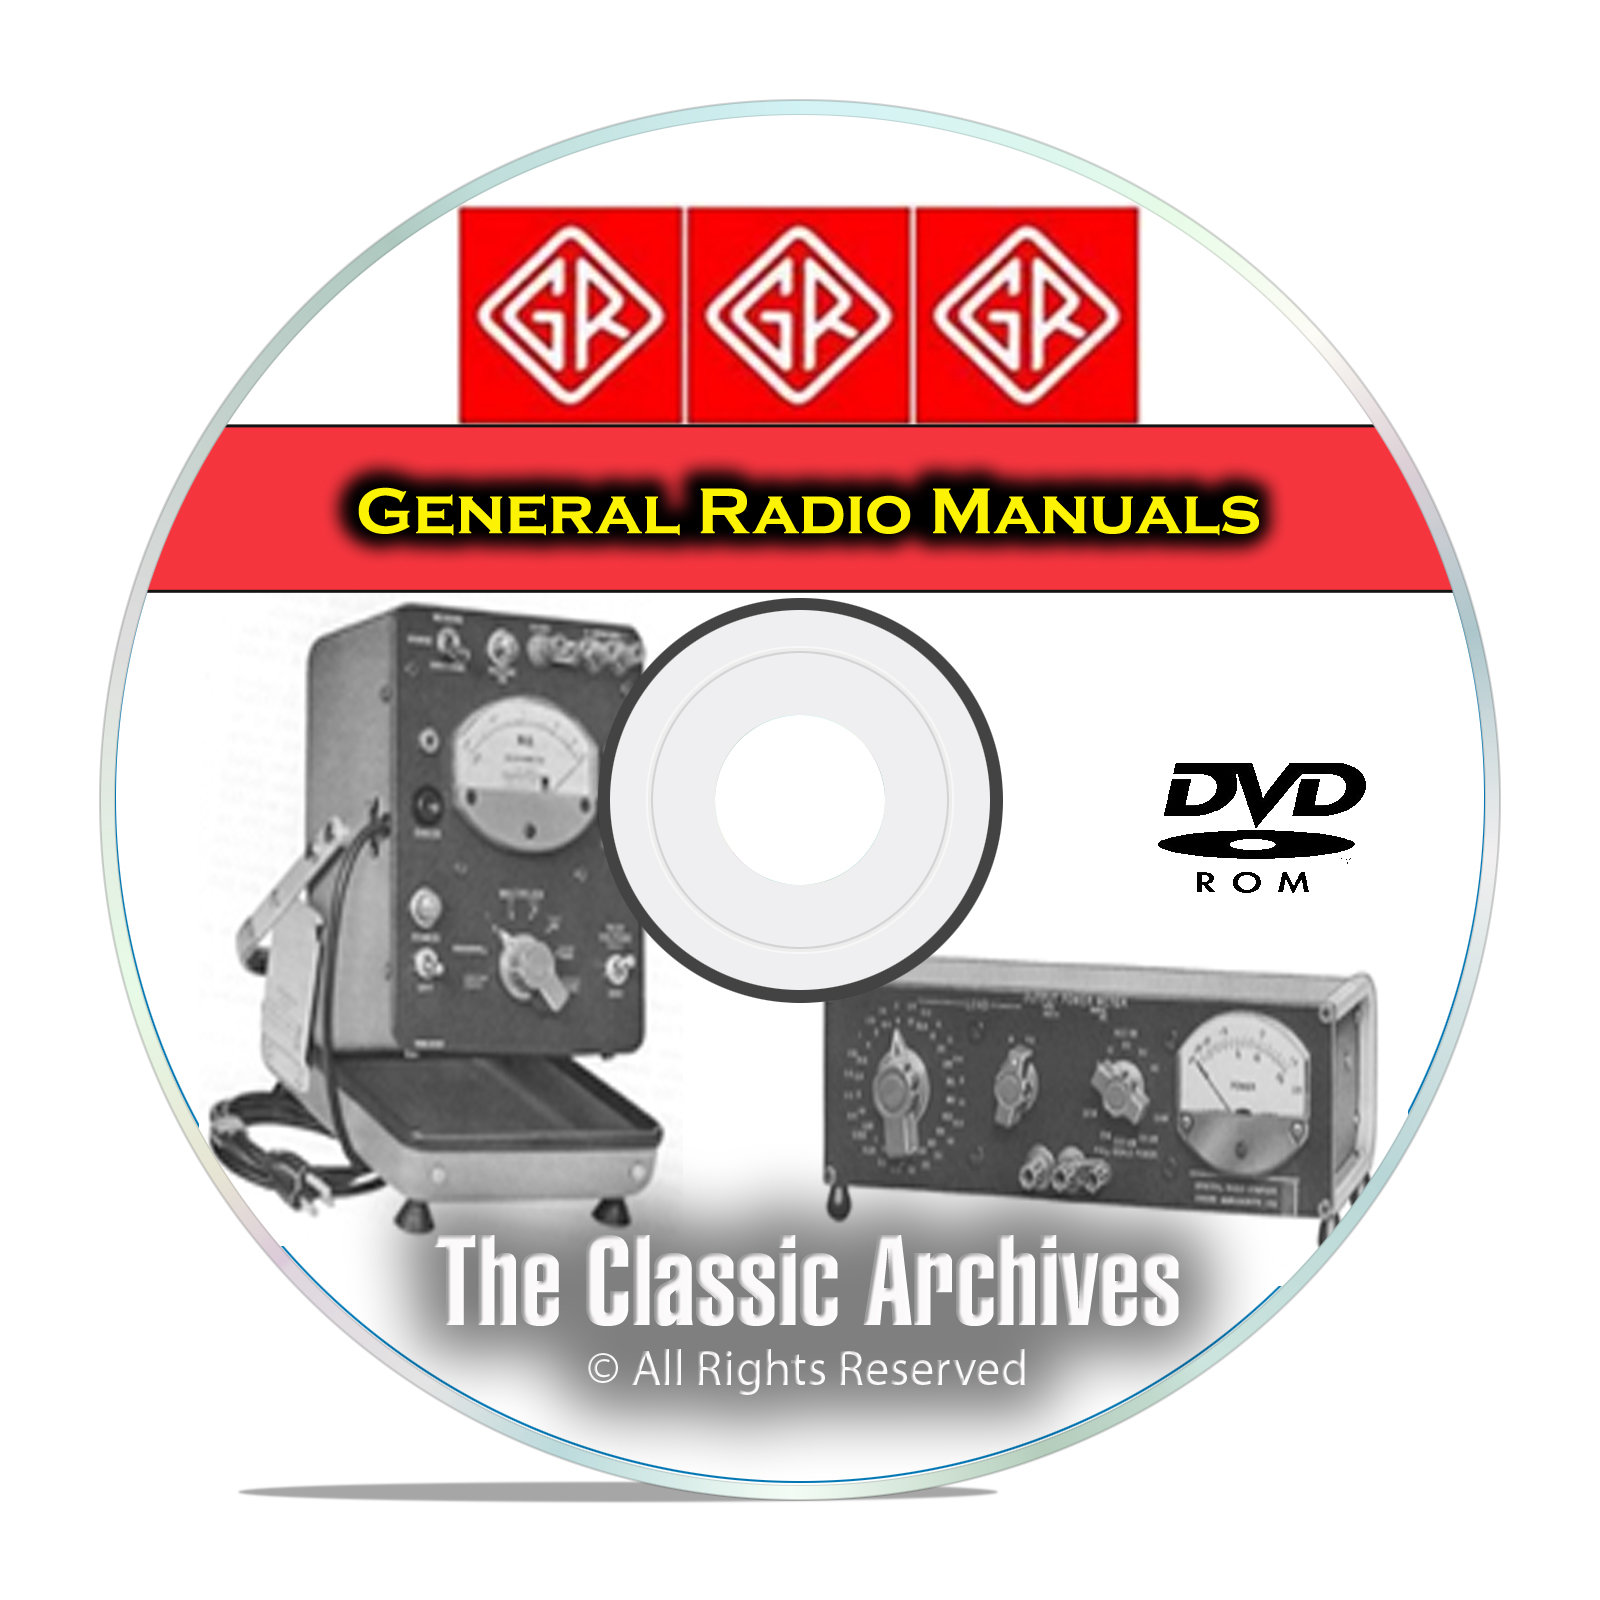 General Radio Service, Maintenance, & Operating Manuals, 341 in Total DVD